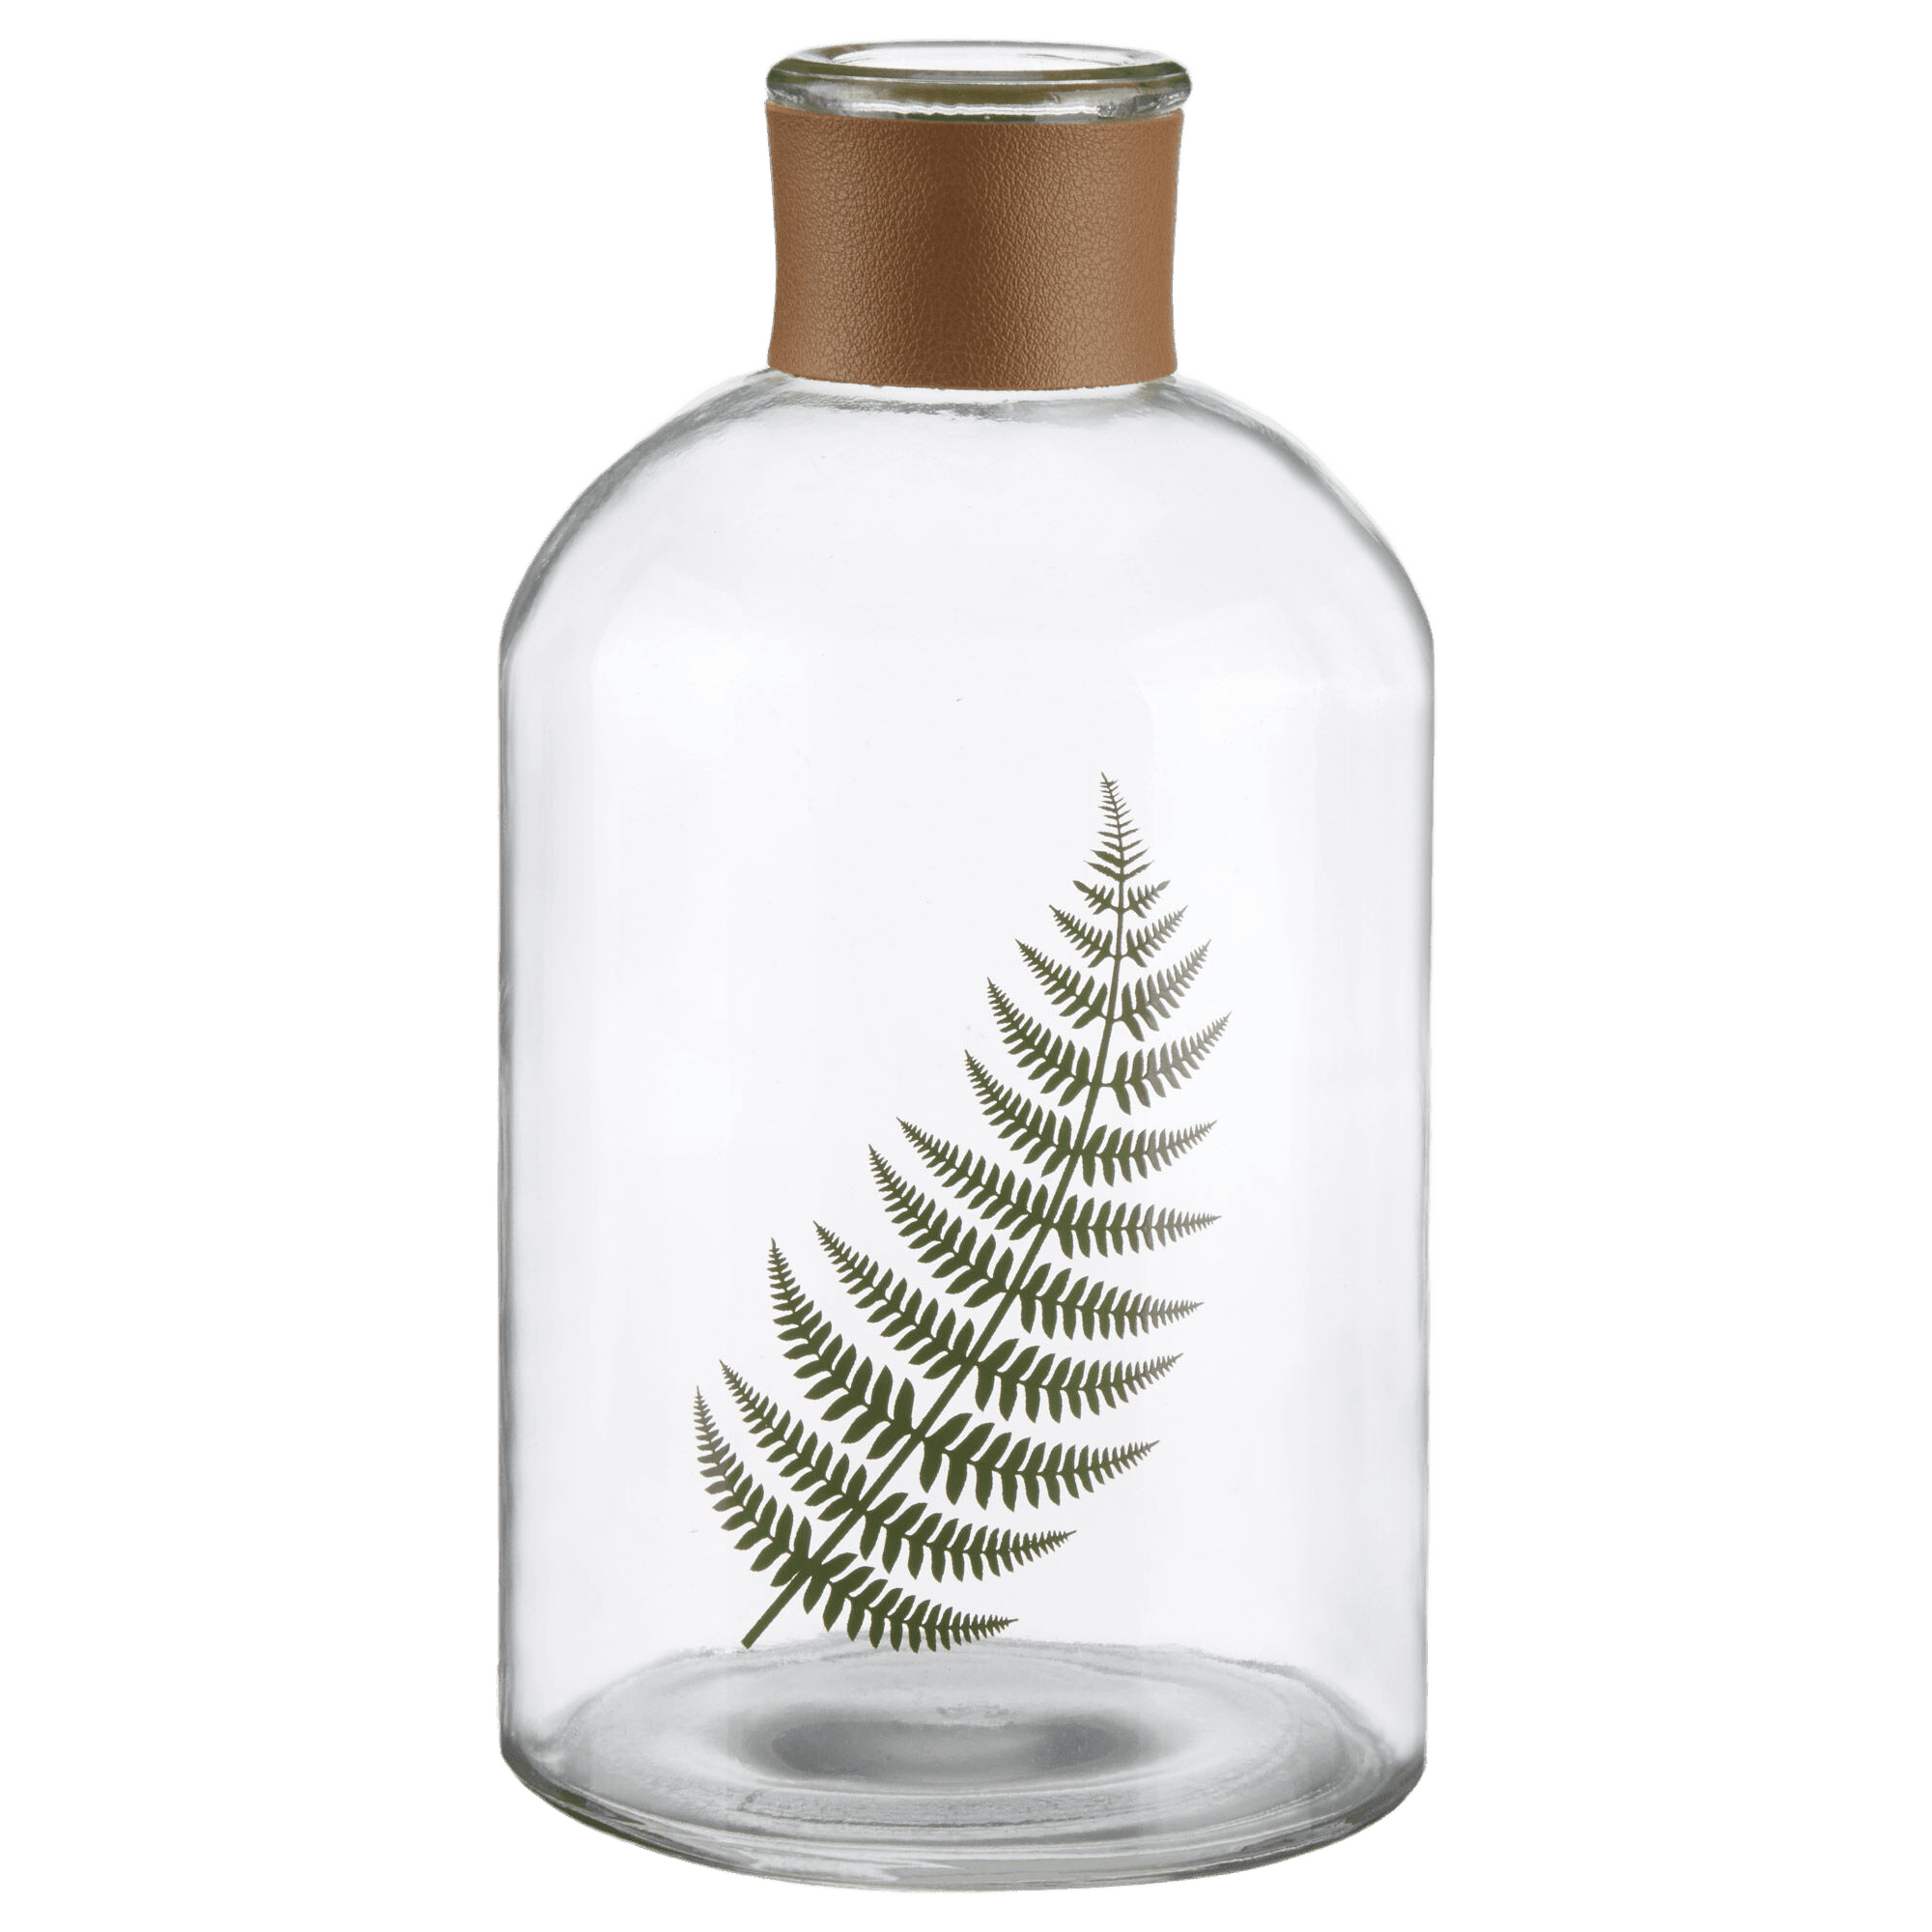 Leaf in a Clear Glass Bottle